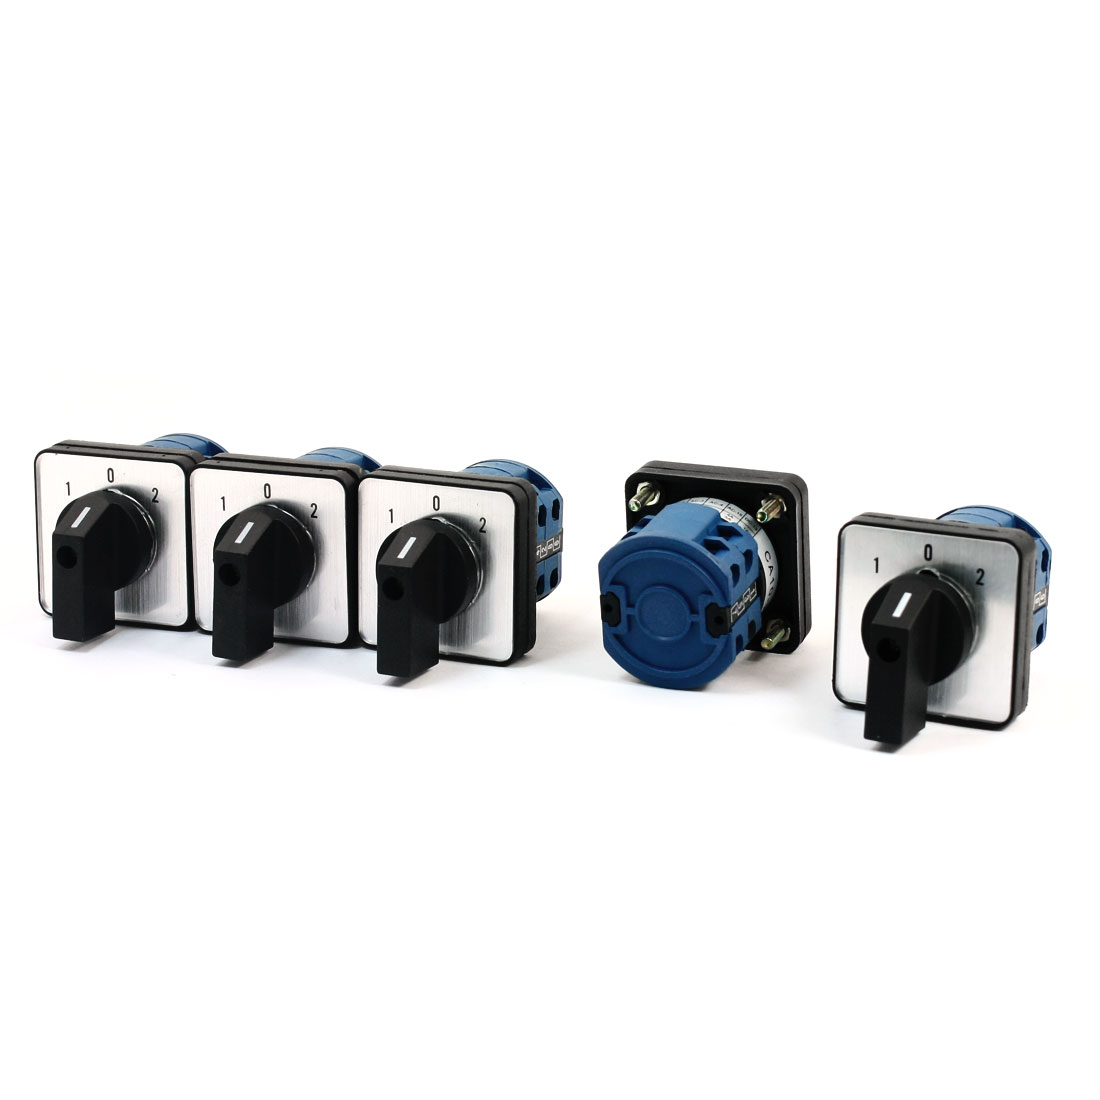 5Pcs CA10-20/2 Ui 660V Ith 20A 8 Screw Terminal 2-Pole 3-Position Square Panel Mounting Rotary Cam Changeover Switch